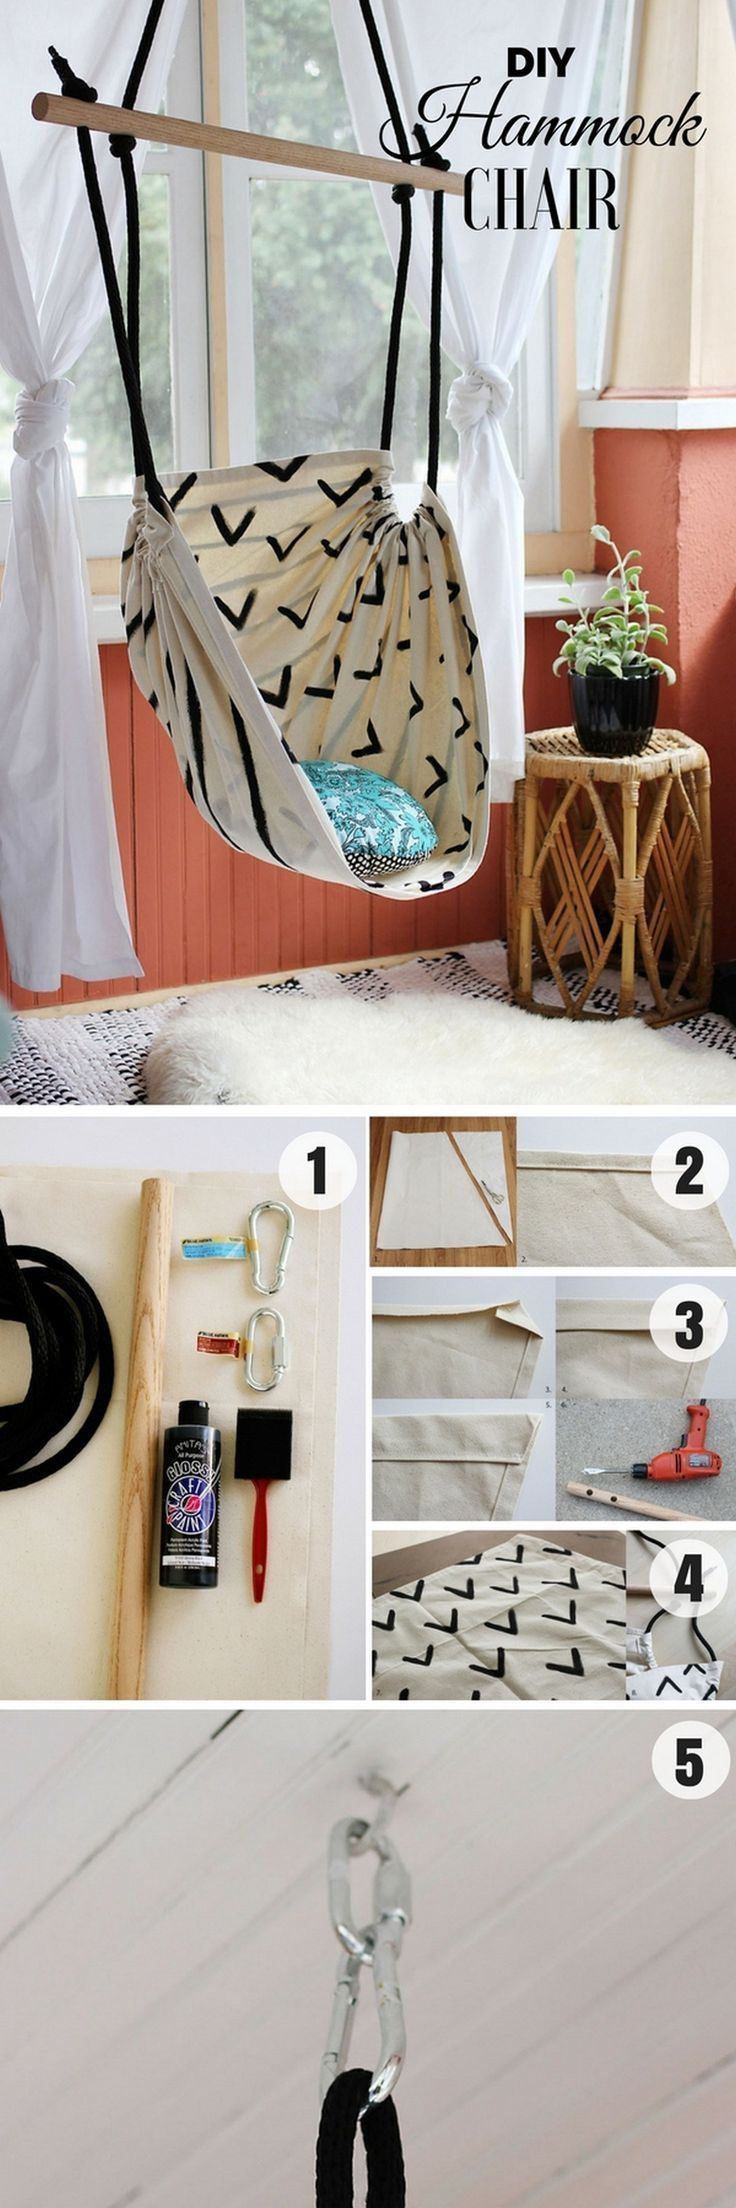 99 Best DIY Room Decorating Ideas For Teens (8) www.djpeter.co.za #ad #hometheat…